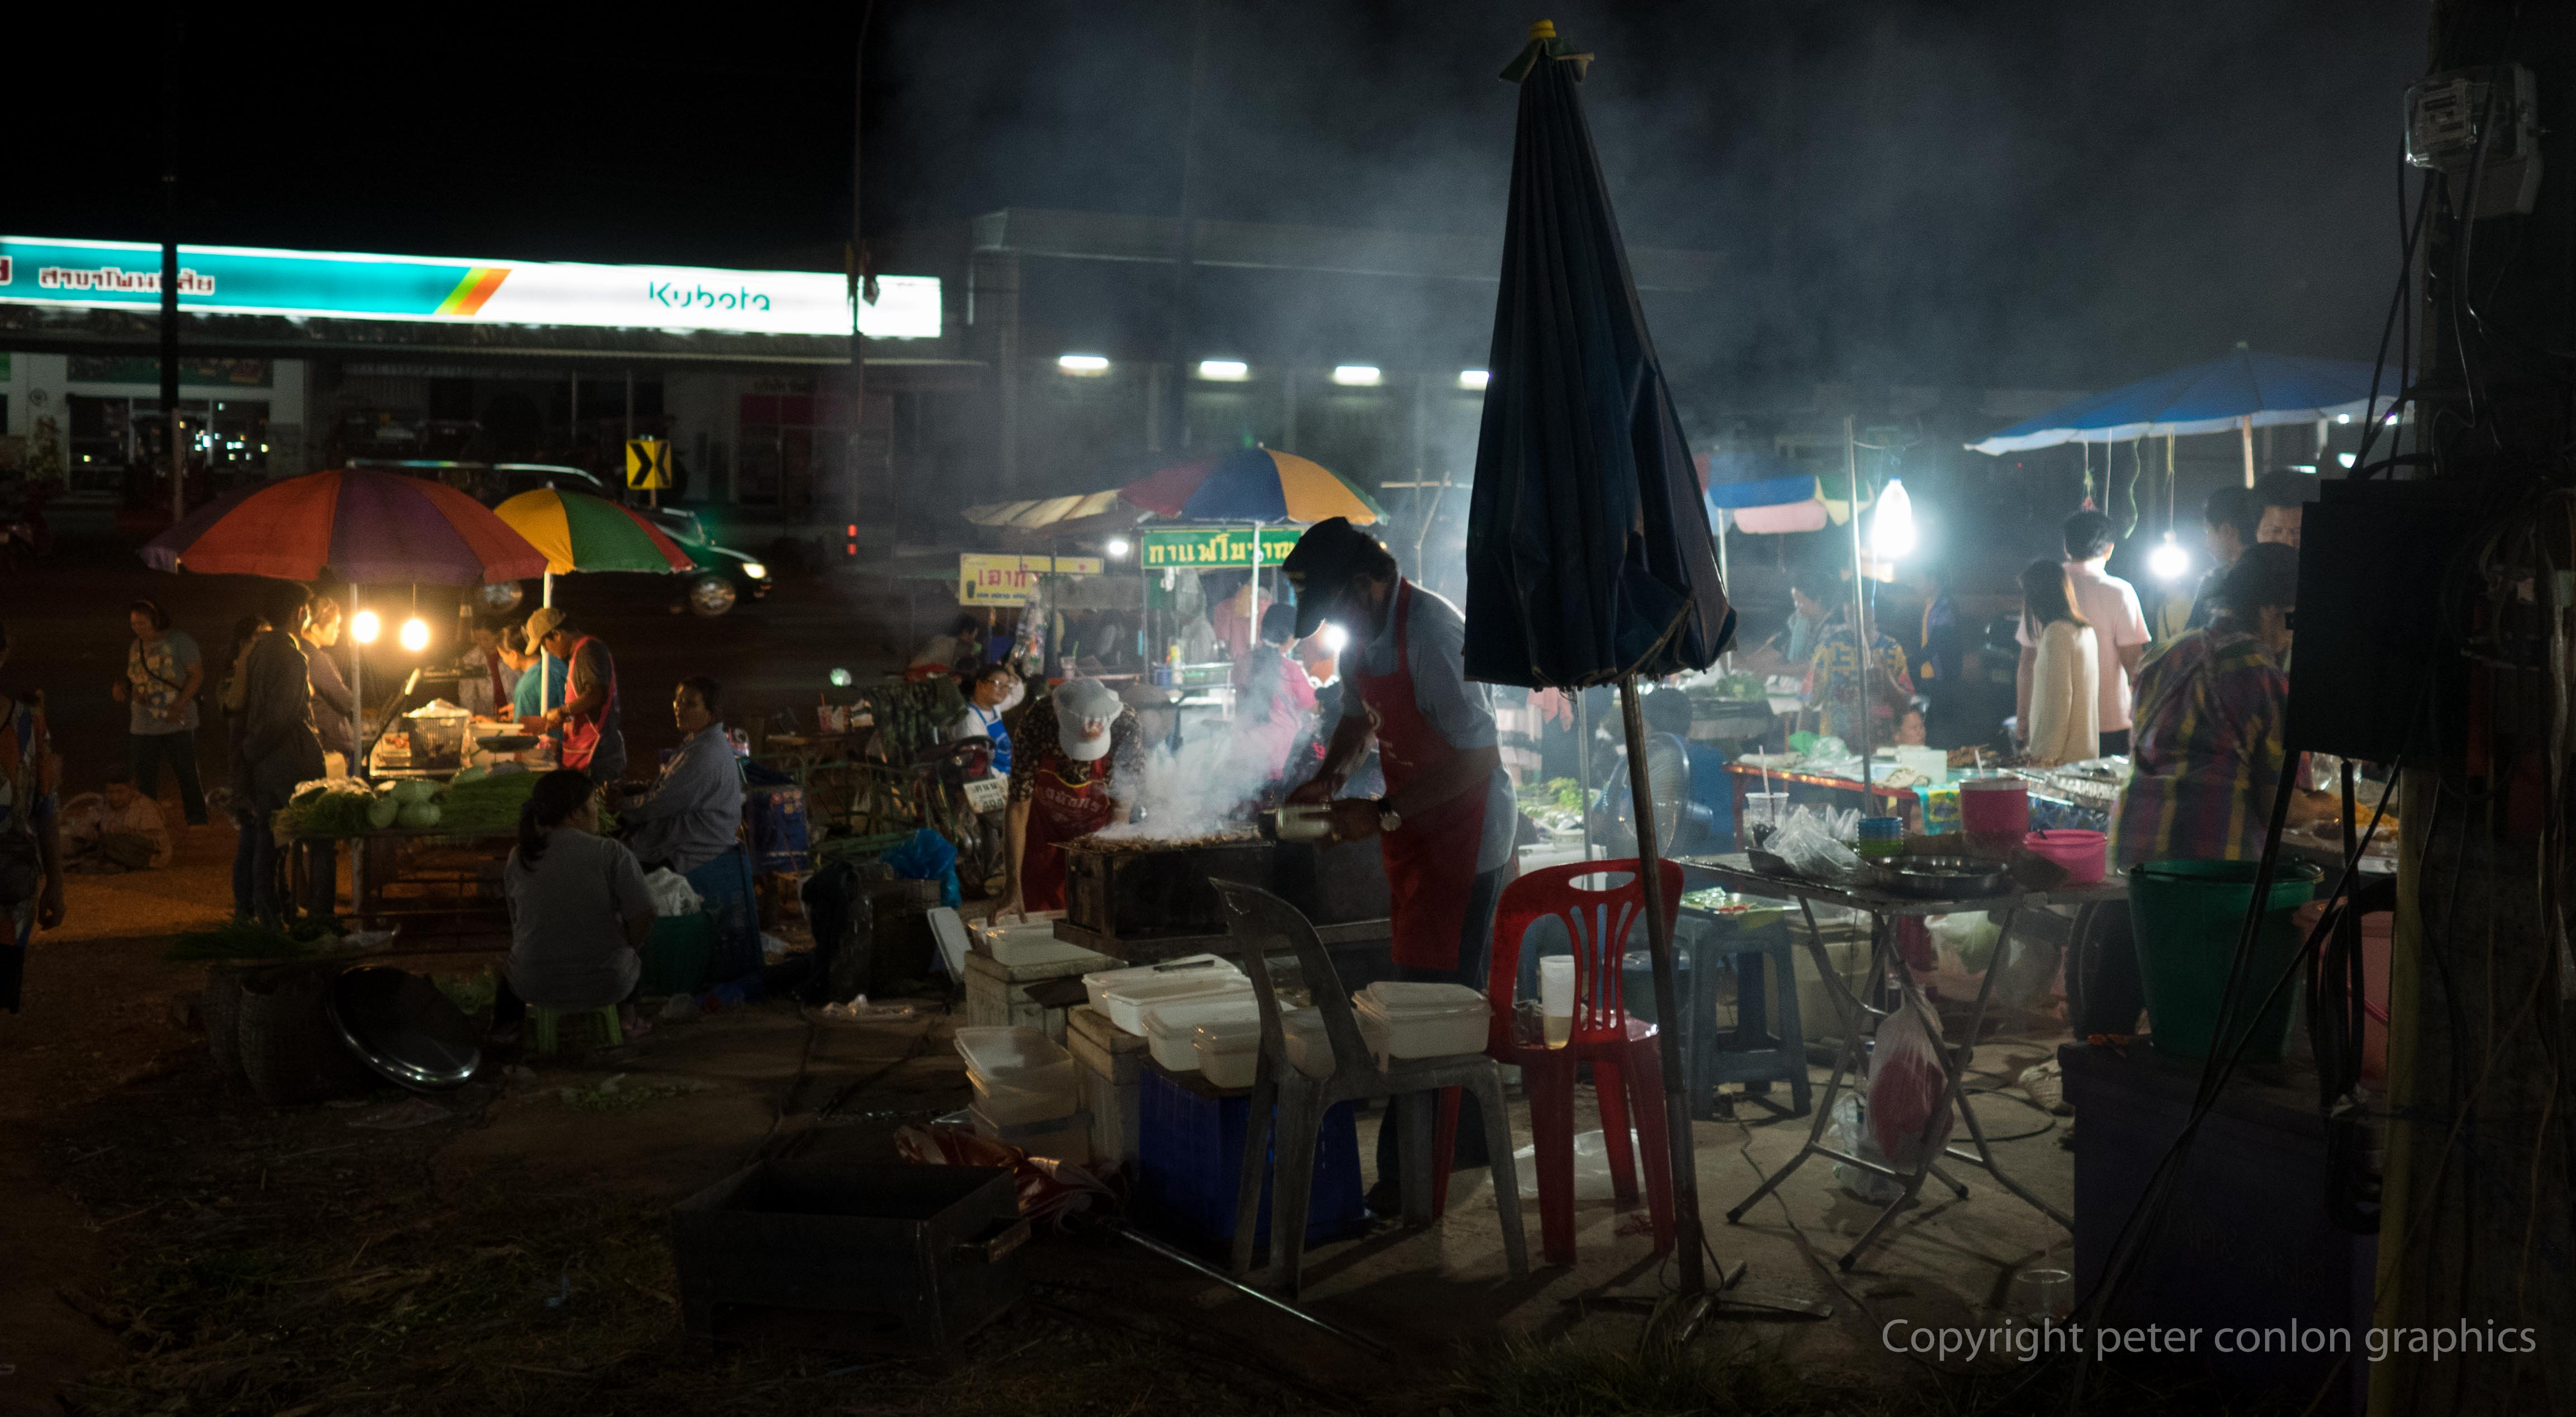 A night market